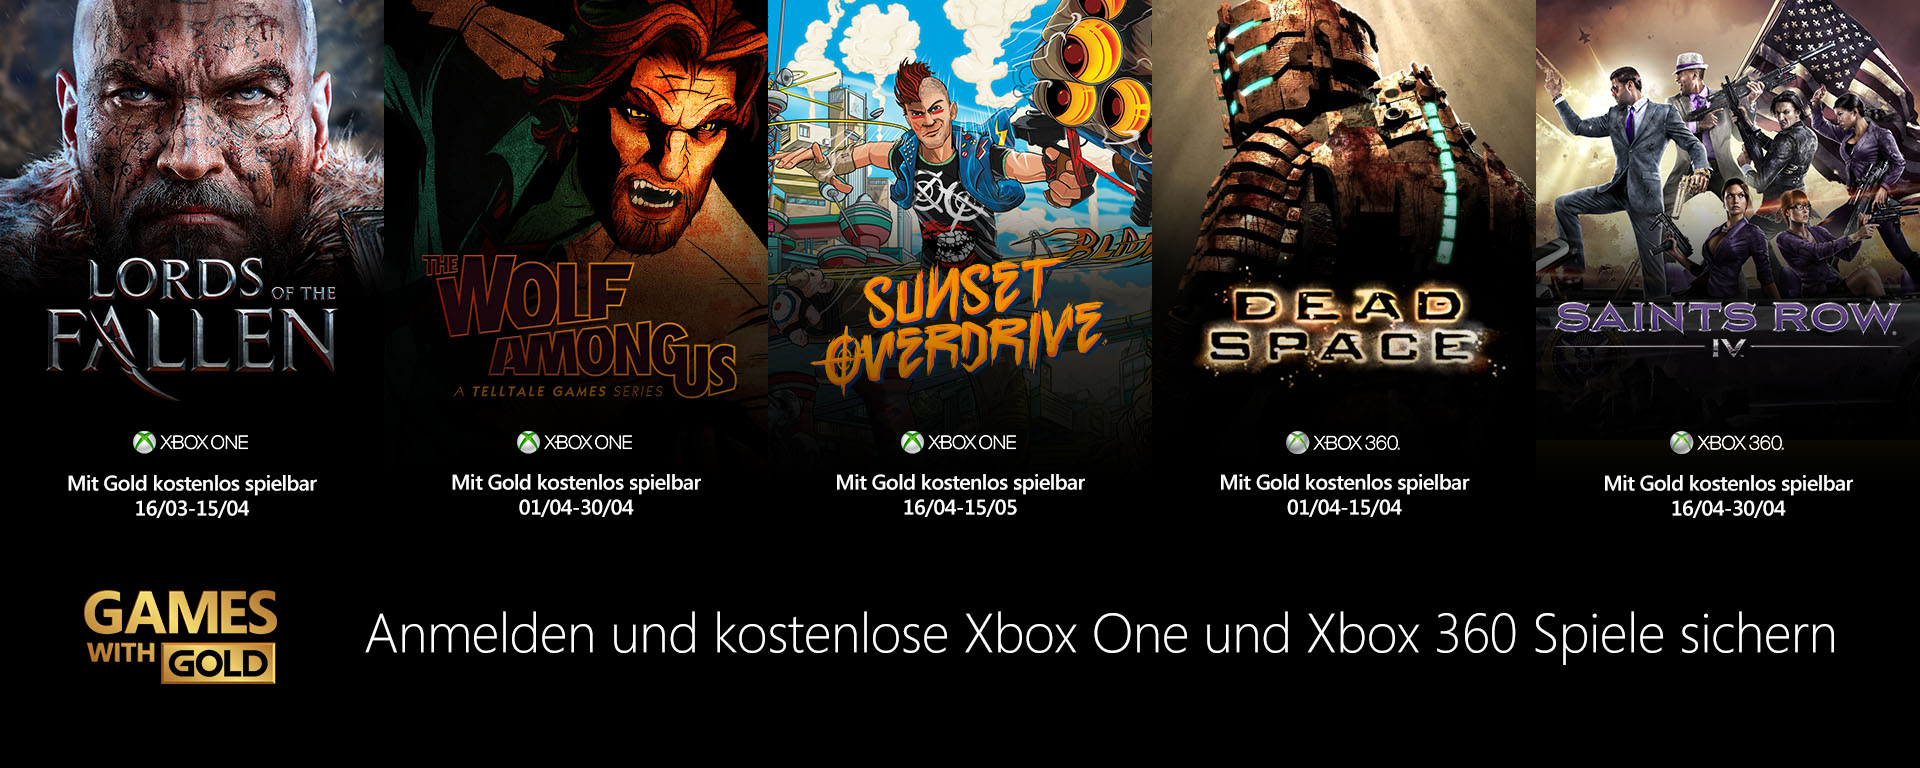 how to get xbox gold for free on xbox 360